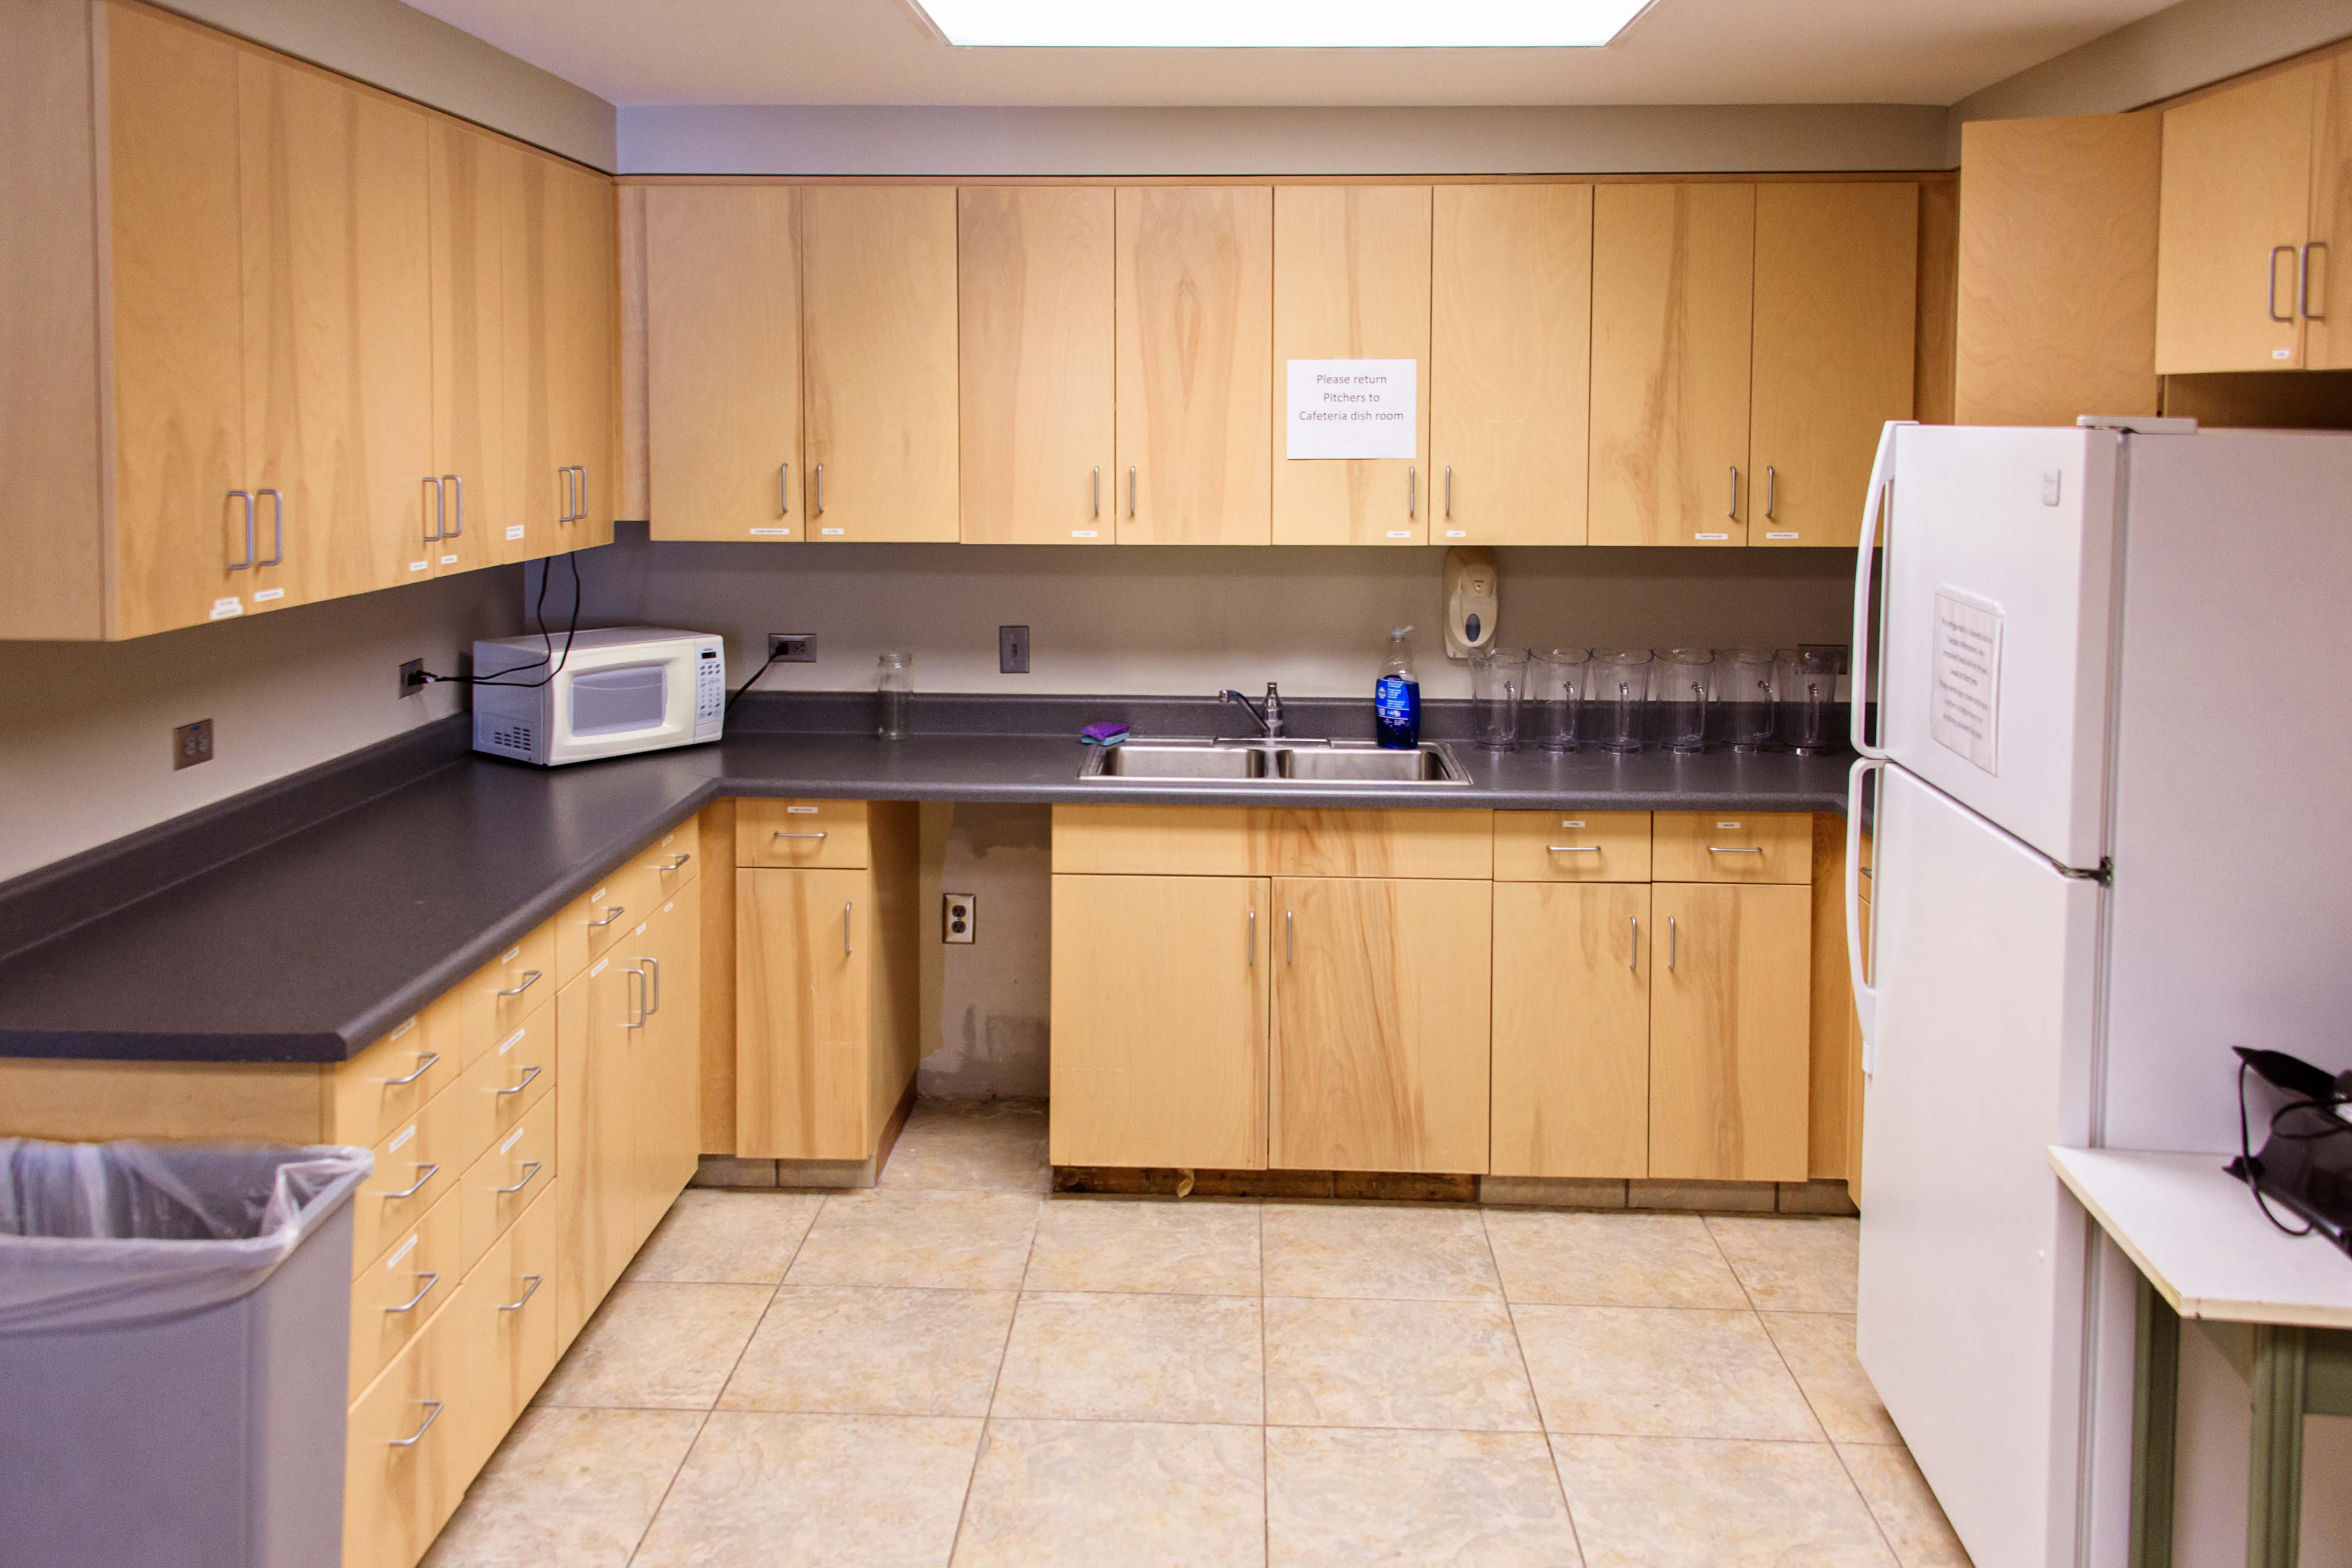 A small kitchen that can be accessed from the Shawnee-Porter Care Conference Room